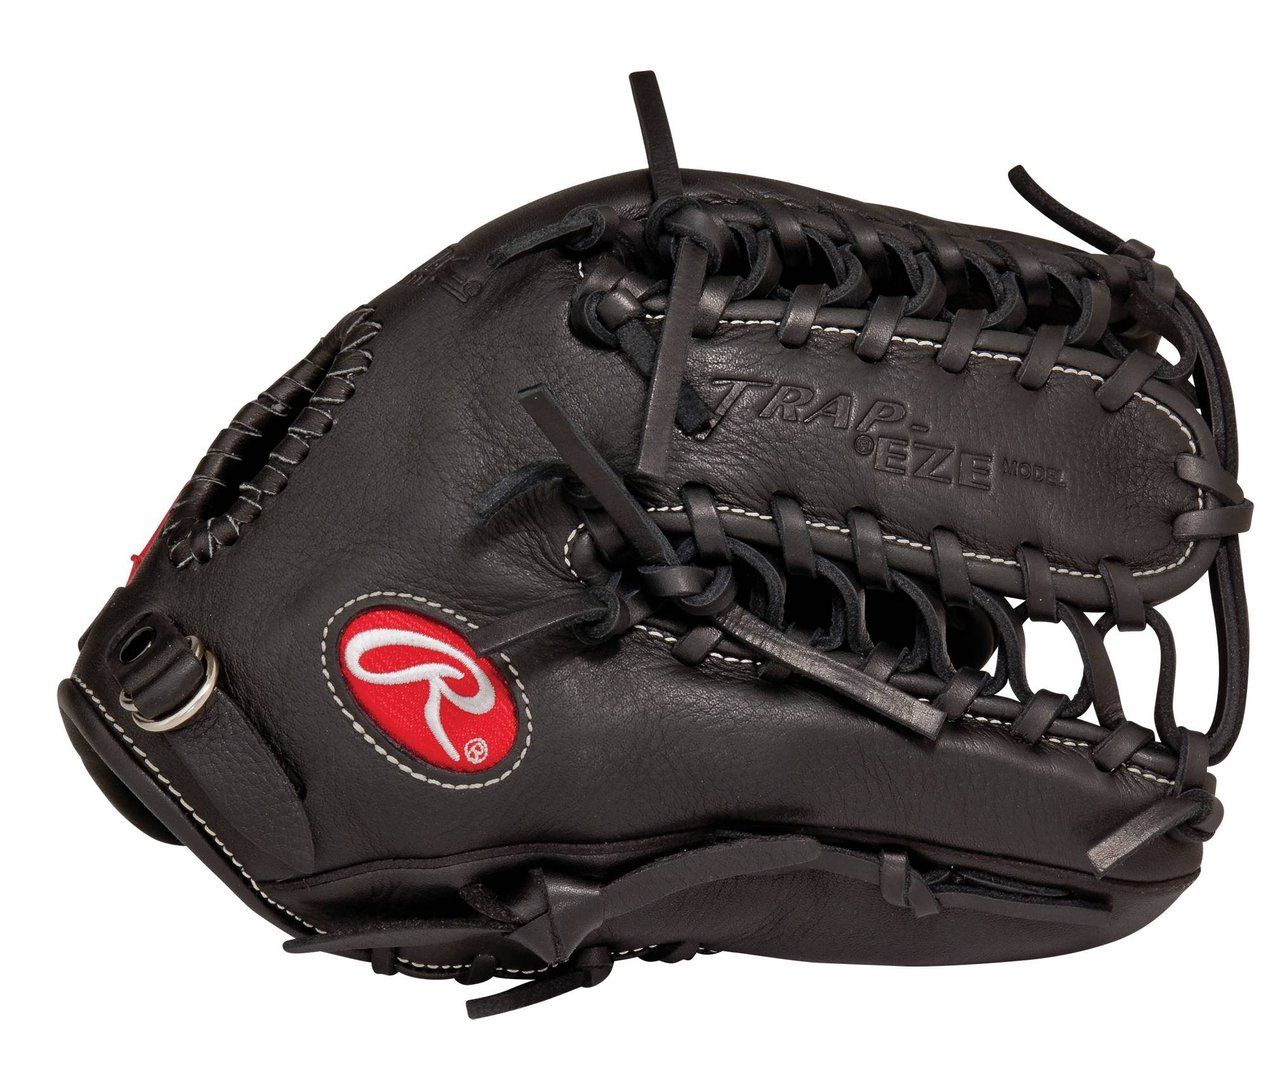 rawlings-g1225pt-gold-glove-youth-gamer-12-25-inch-pro-taper-baseball-glove-right-handed-throw G1225PT-Right Handed Throw Rawlings 083321636134 The Rawlings Gold Glove Youth Gamer Pro Taper baseball glove from